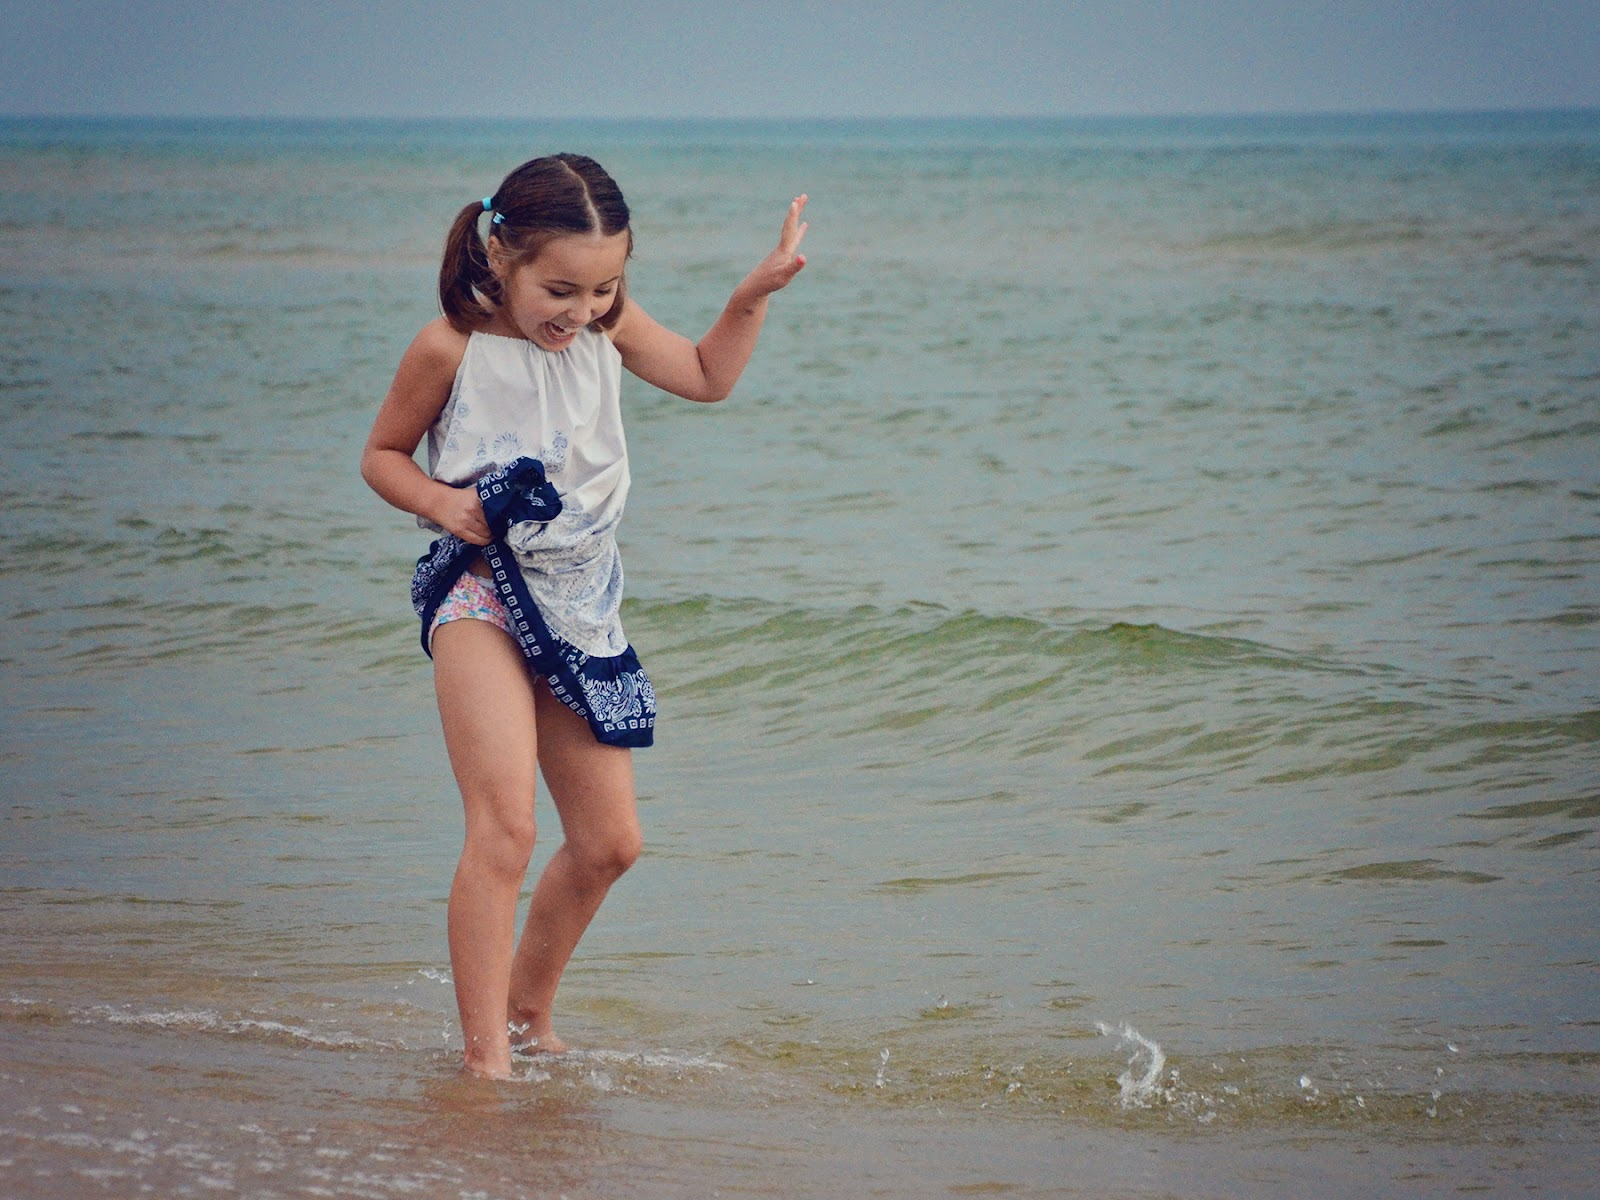 The Very young little girls beaches improbable